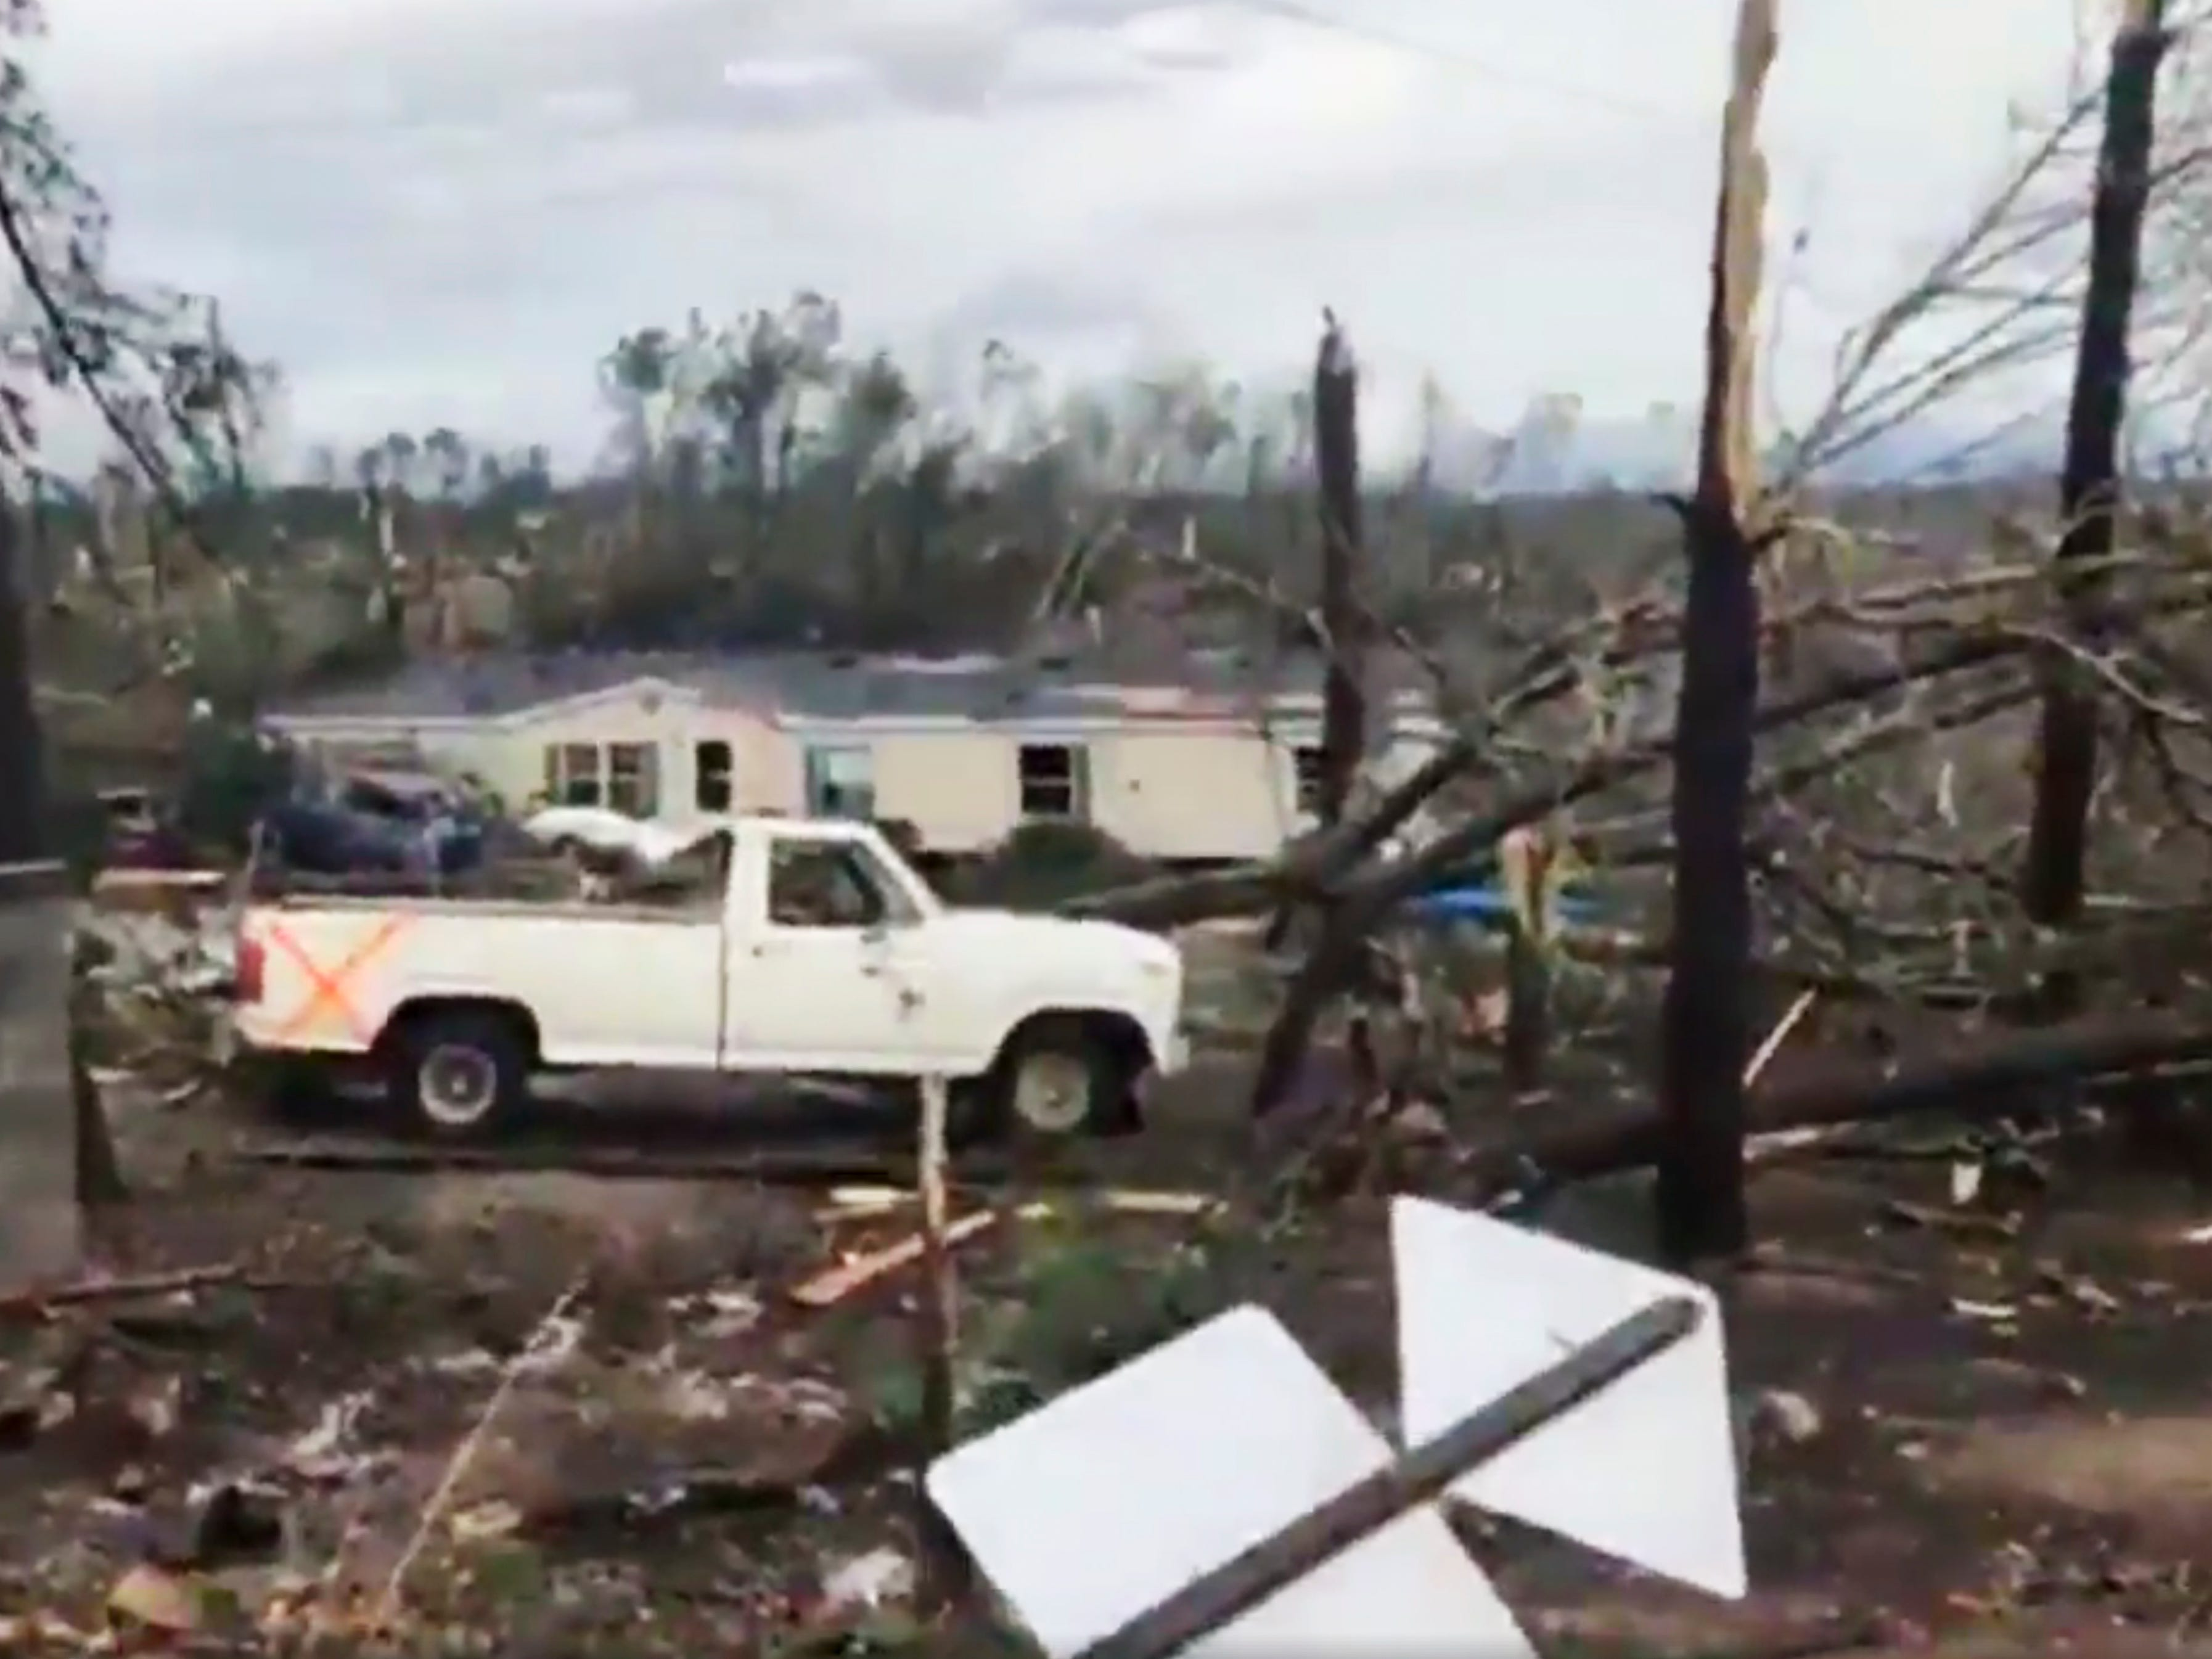 This photo shows debris in Lee County, Ala., after what appeared to be a tornado struck in the area Sunday, March 3, 2019. Severe storms destroyed mobile homes, snapped trees and left a trail of destruction amid weather warnings extending into Georgia, Florida and South Carolina, authorities said. (WKRG-TV via AP) ORG XMIT: WKRG703